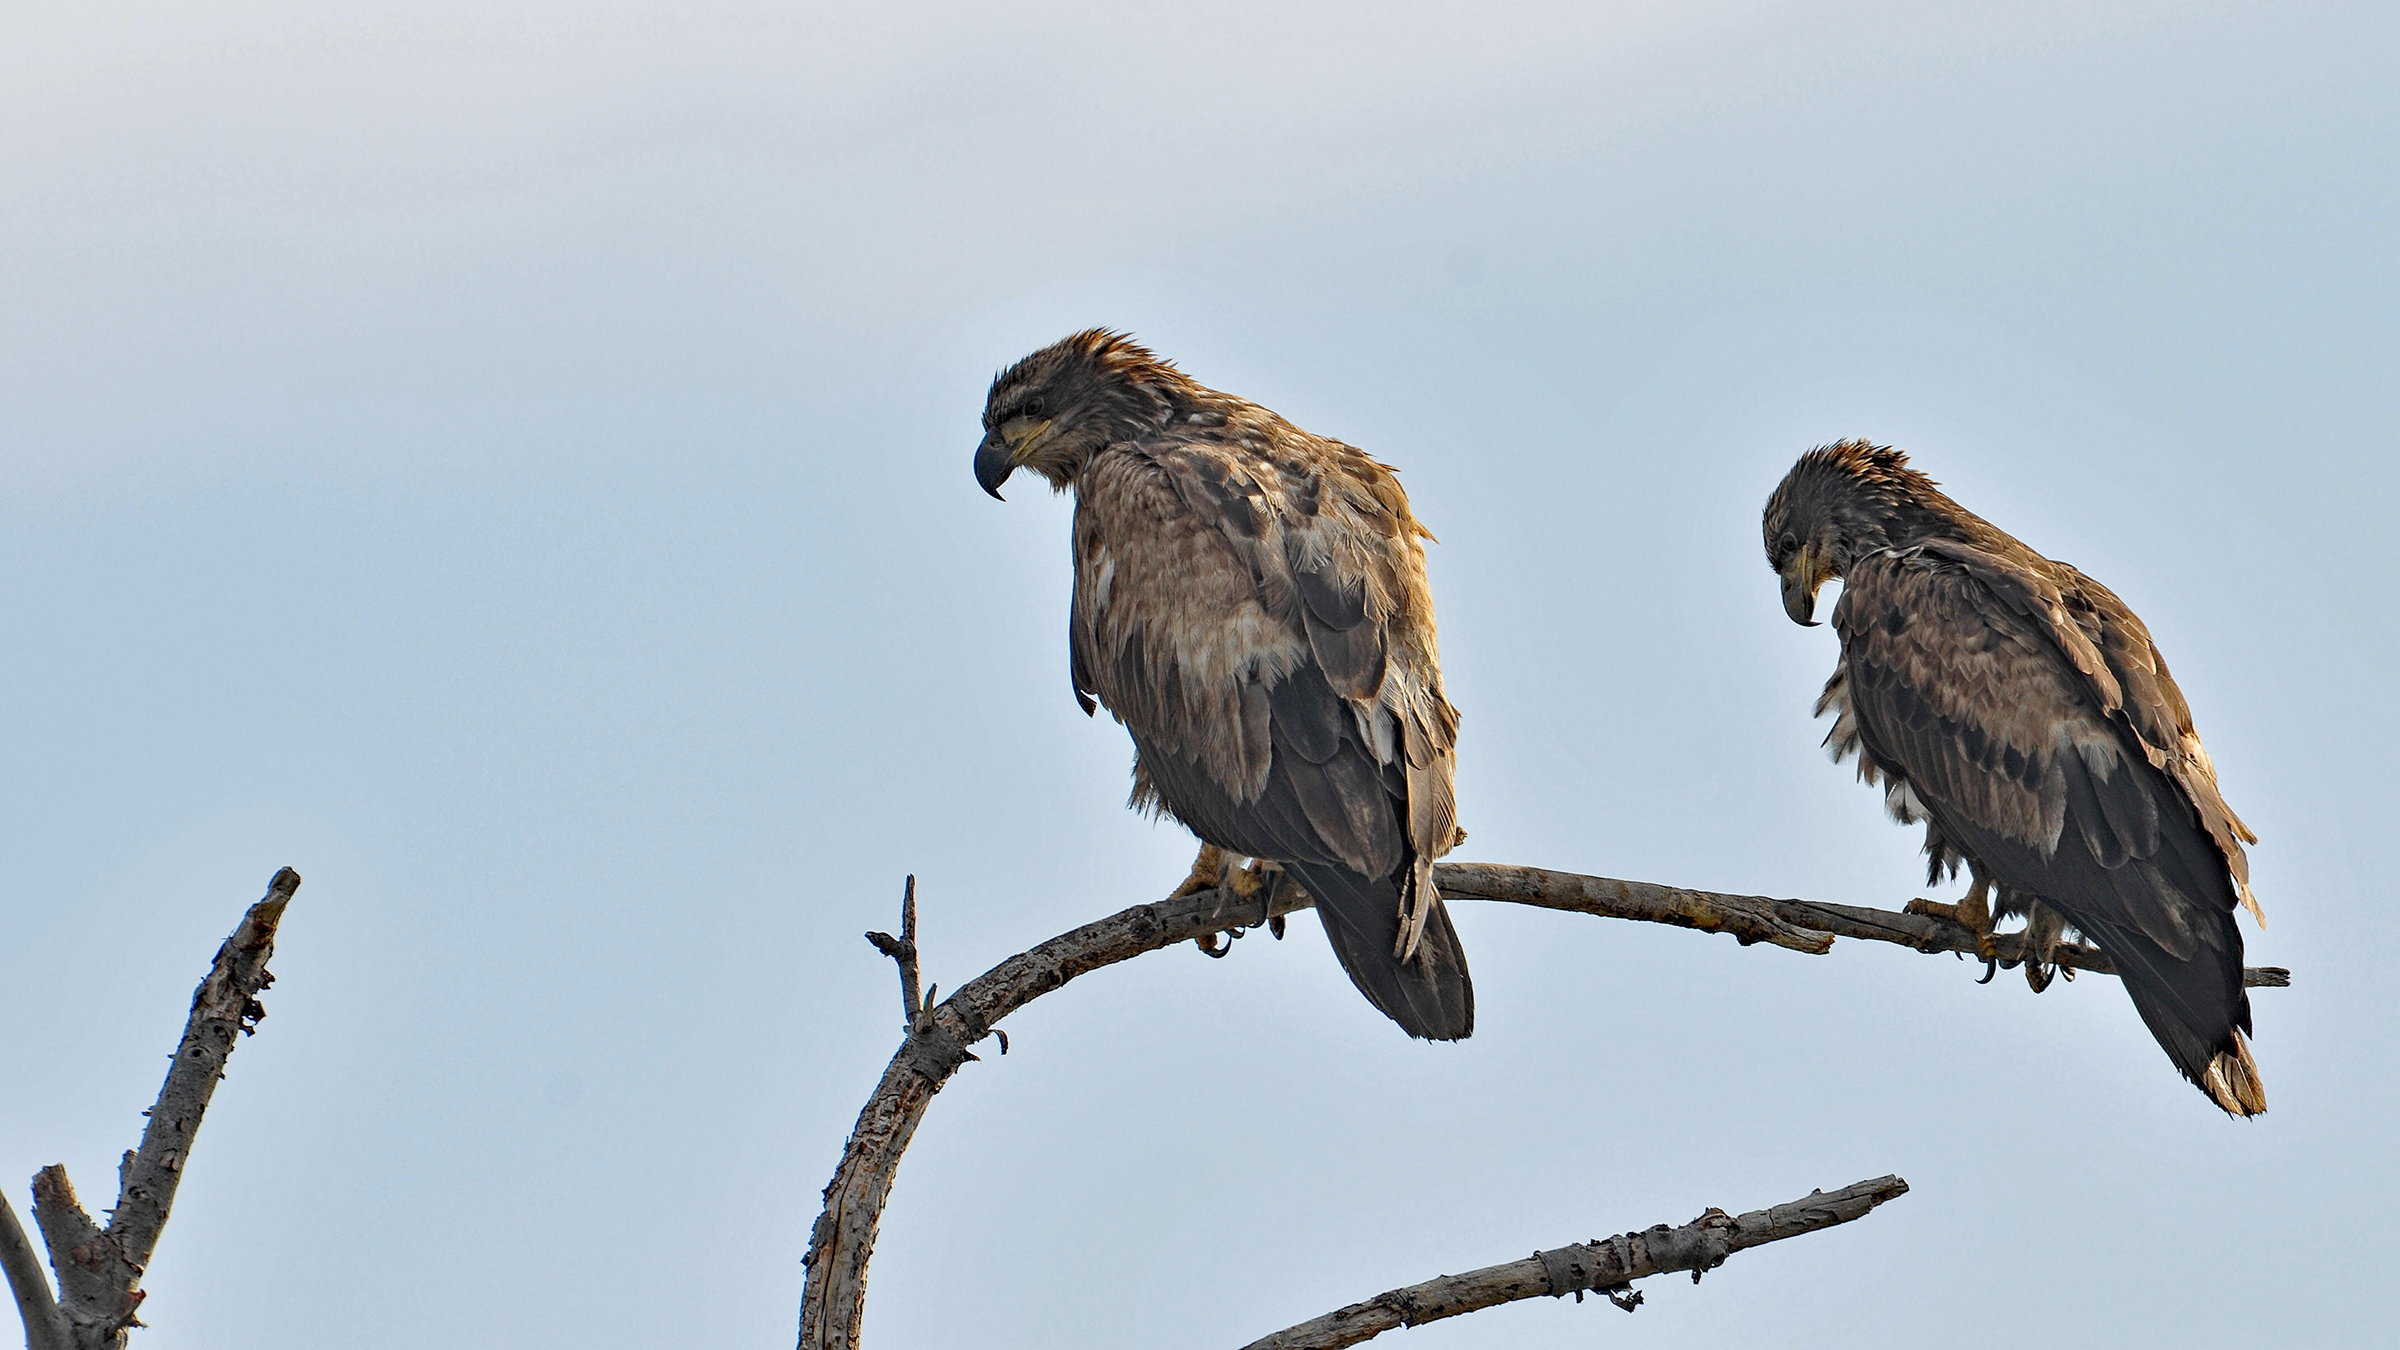 Two juvenile eagles watched the bizarre duo.